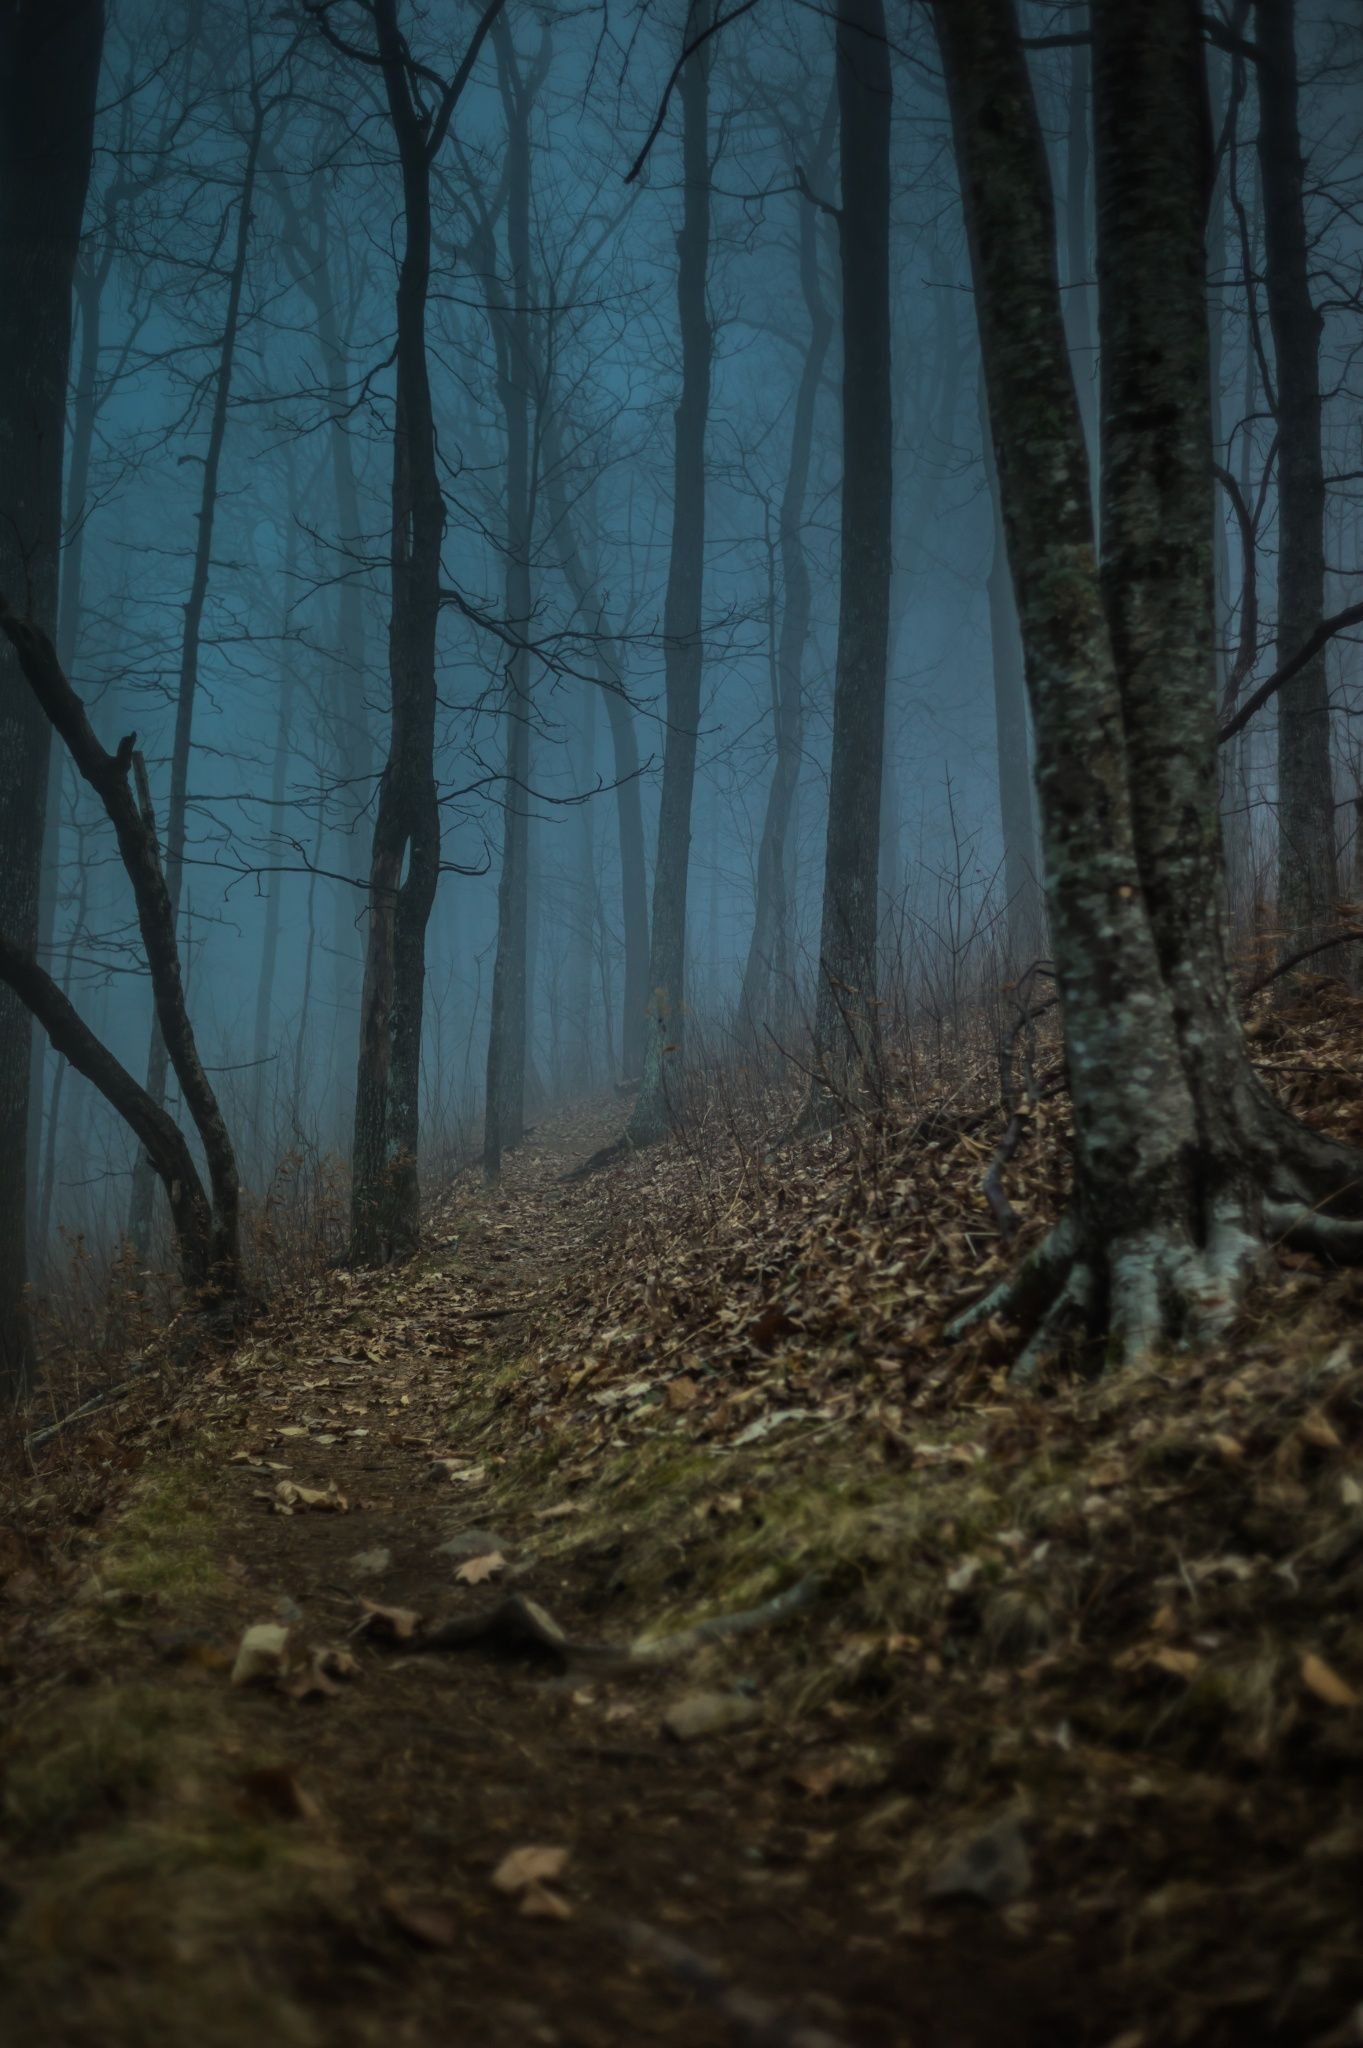 Pale blue twilight creeps into my vision, and I can smell the scent of withered leaves as they merge with the dampened earth.